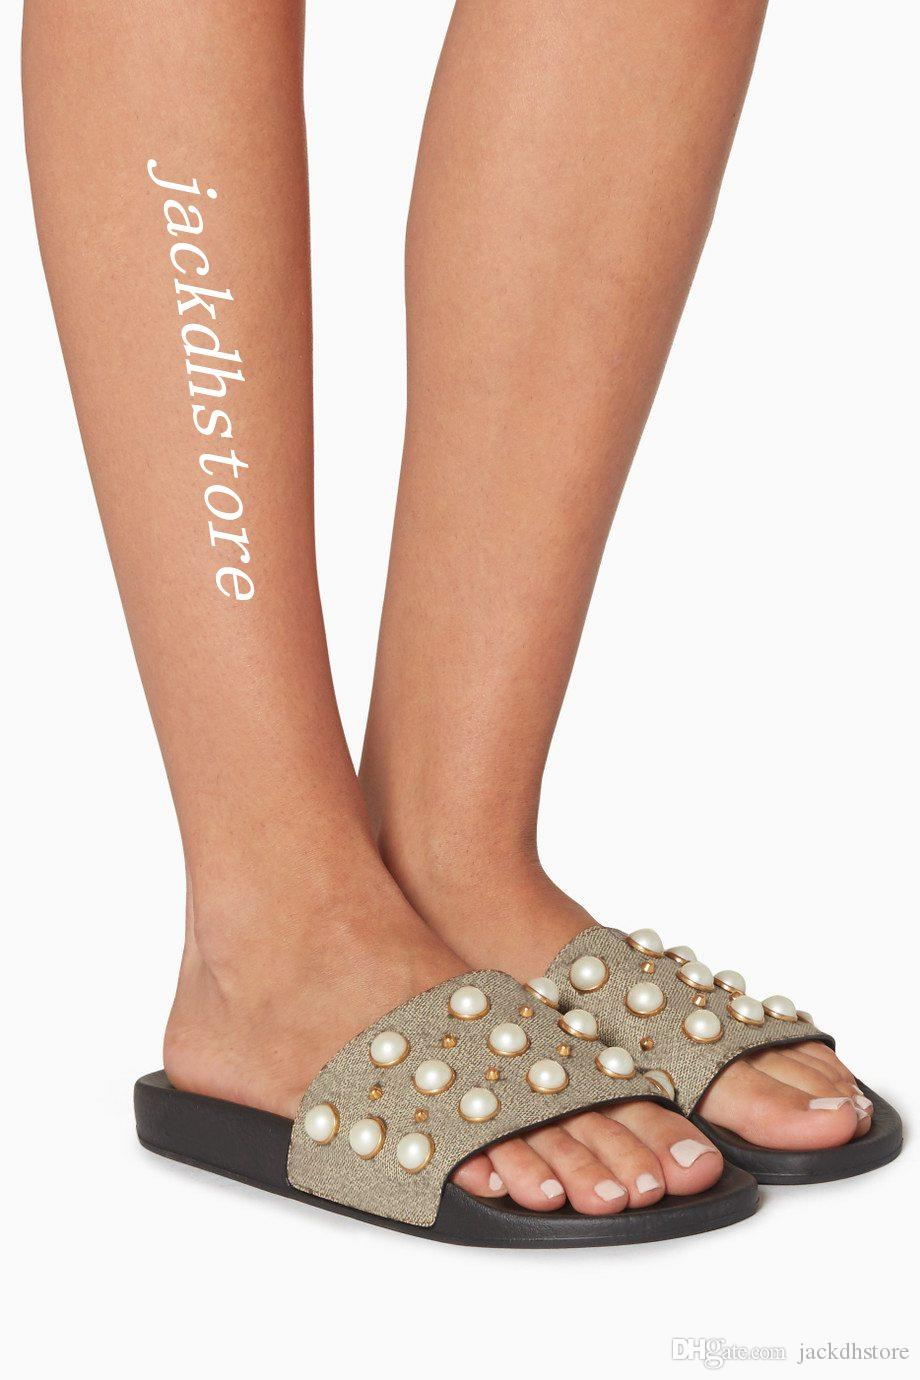 bc3aaba59704 Men And Women Pearl Embellished Rubber Slider Sandals Summer Outdoor Beach Flat  Flip Flops Size Euro35 45 Sandals For Women Knee High Gladiator Sandals  From ...